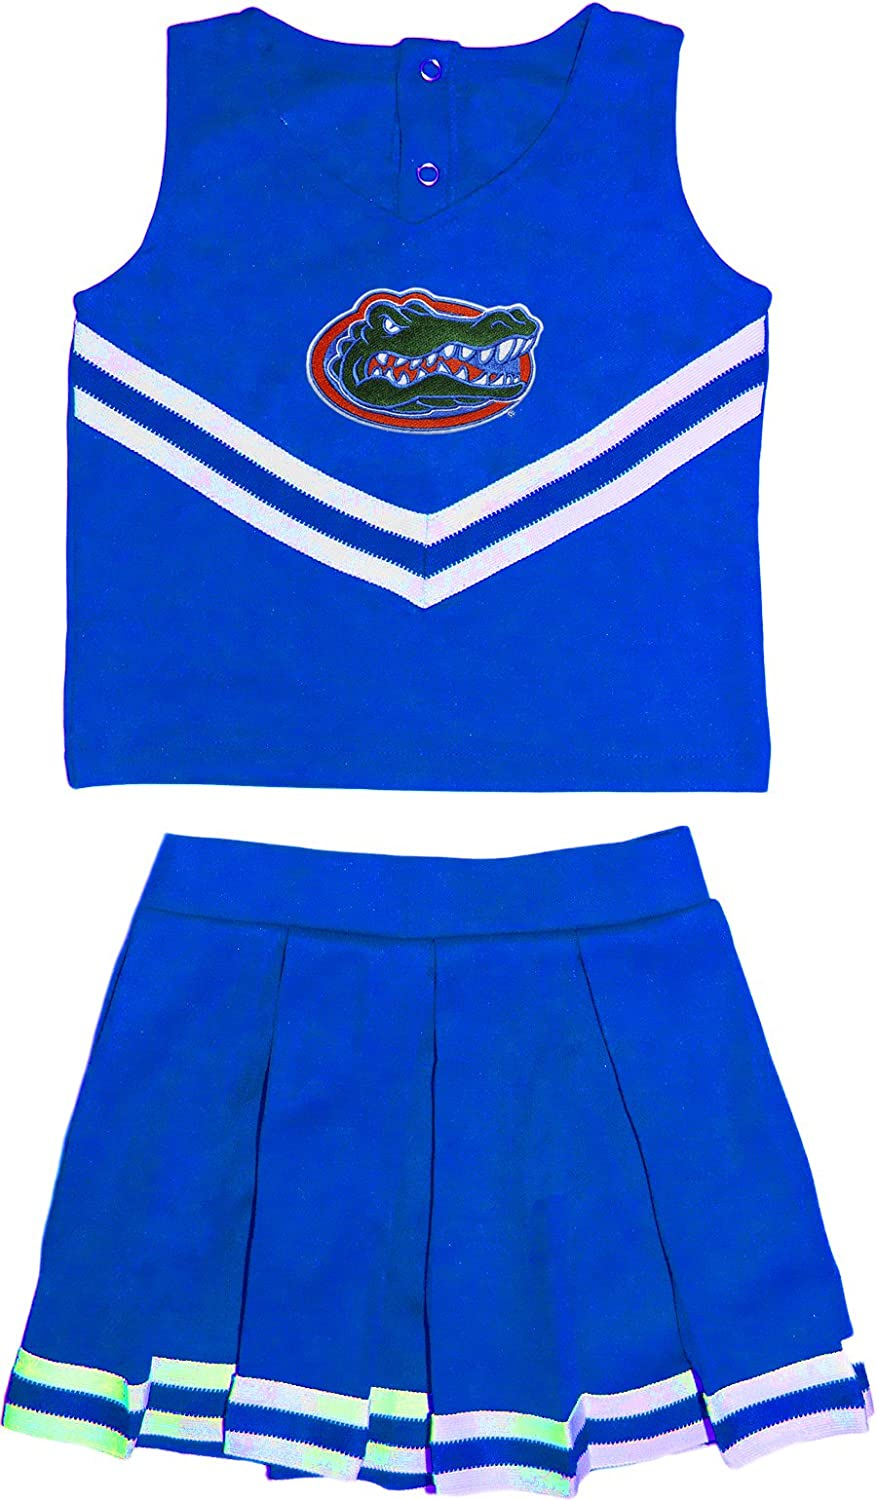 University of Florida Gators Toddler and Youth 3-Piece Cheerleader Dress